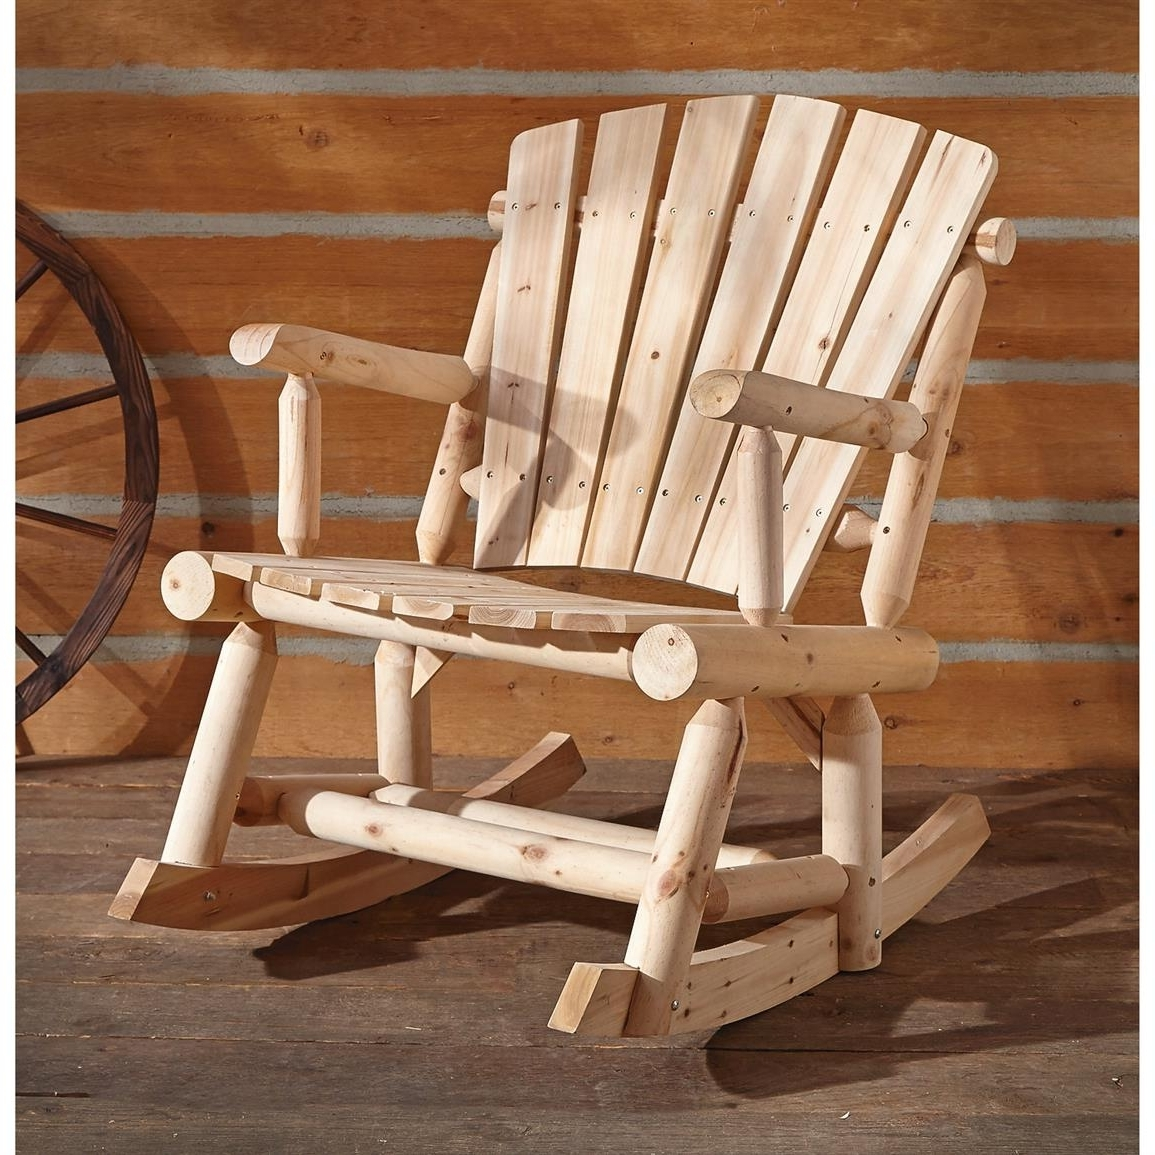 Oversized Patio Rocking Chairs Inside Well Known Castlecreek Oversized Adirondack Rocker – 657797, Patio Furniture At (View 12 of 20)